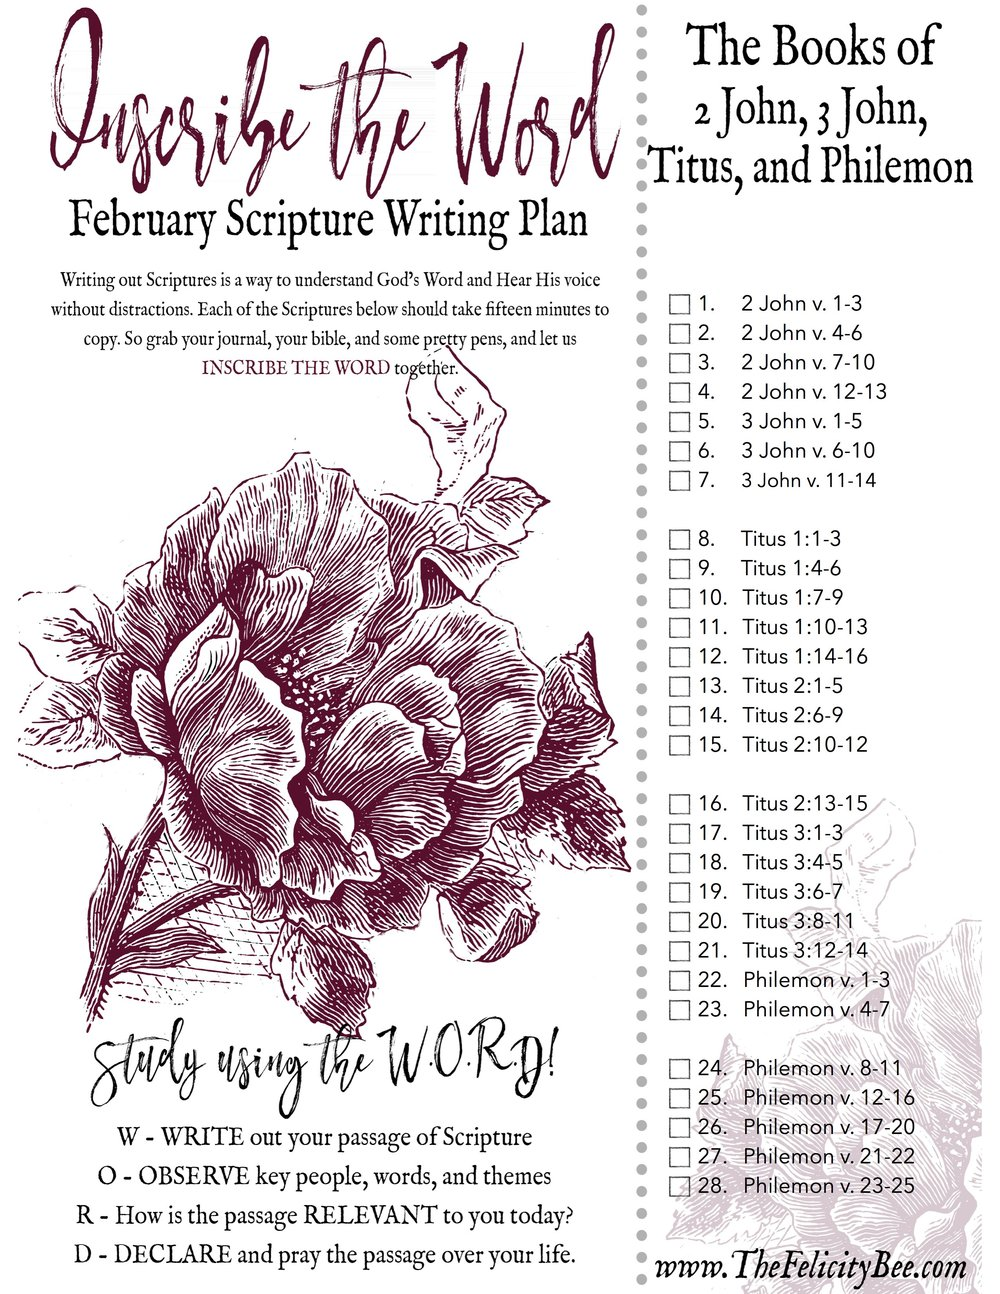 CLICK HERE  to download Your February Scripture Writing Plan!